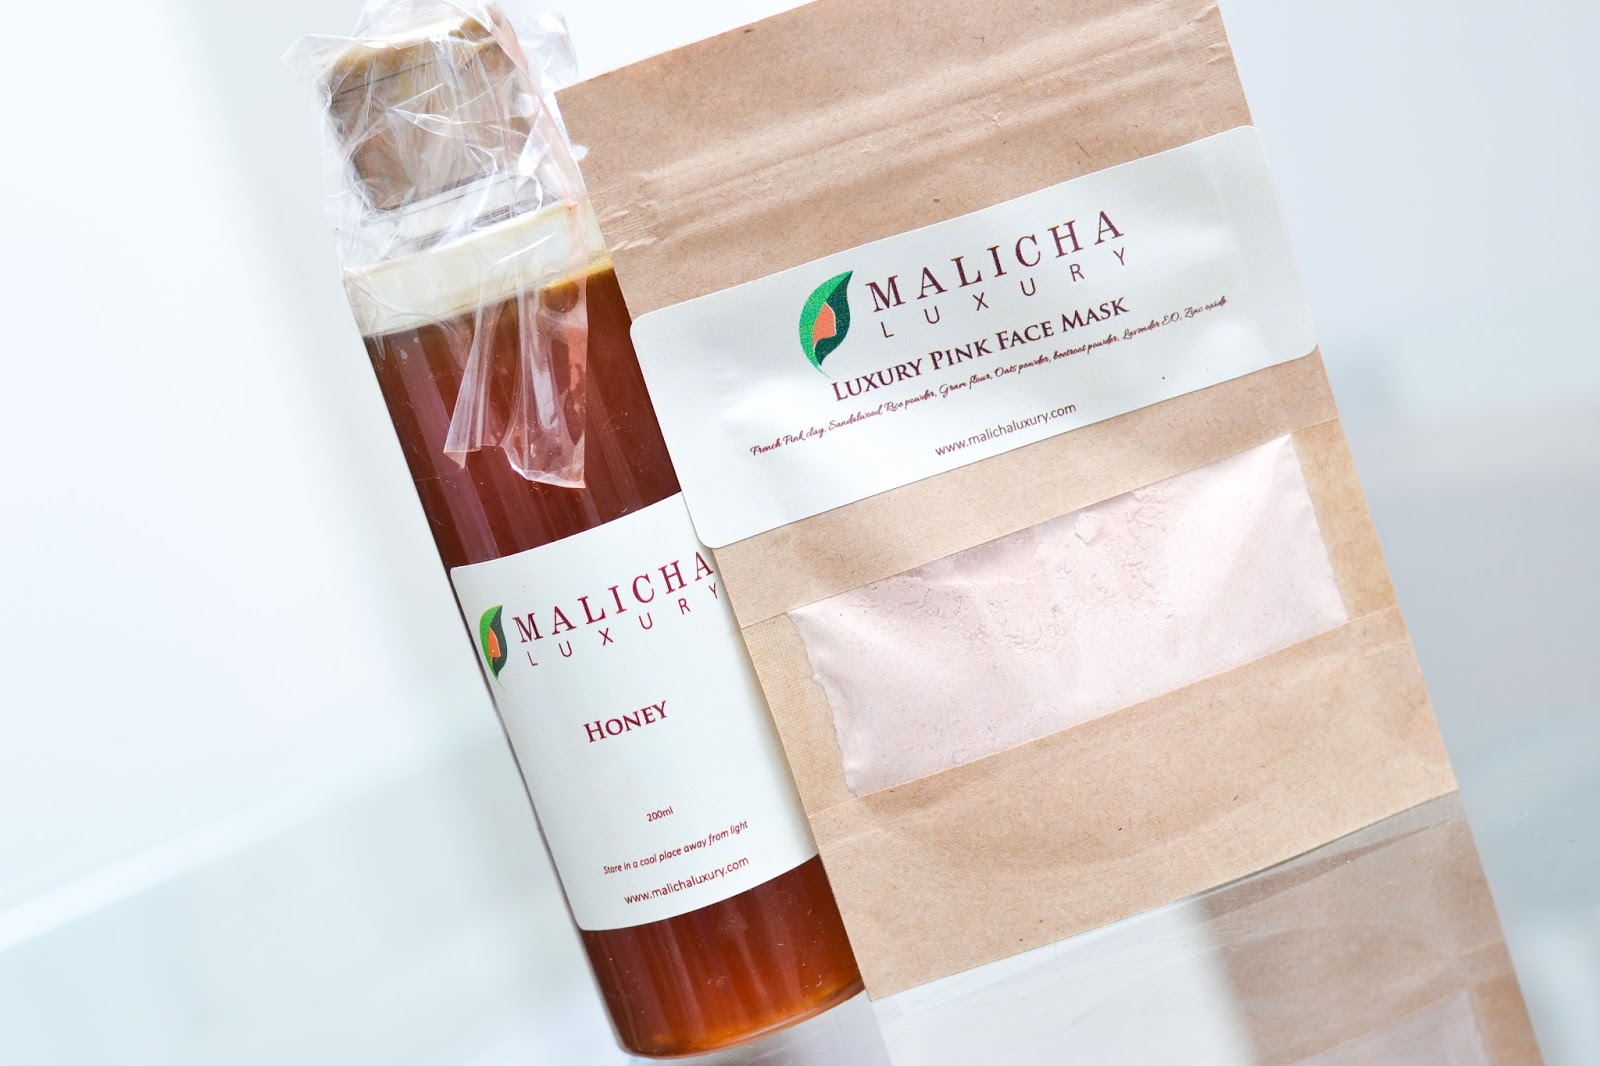 Malicha Luxury Face Mask & Honey